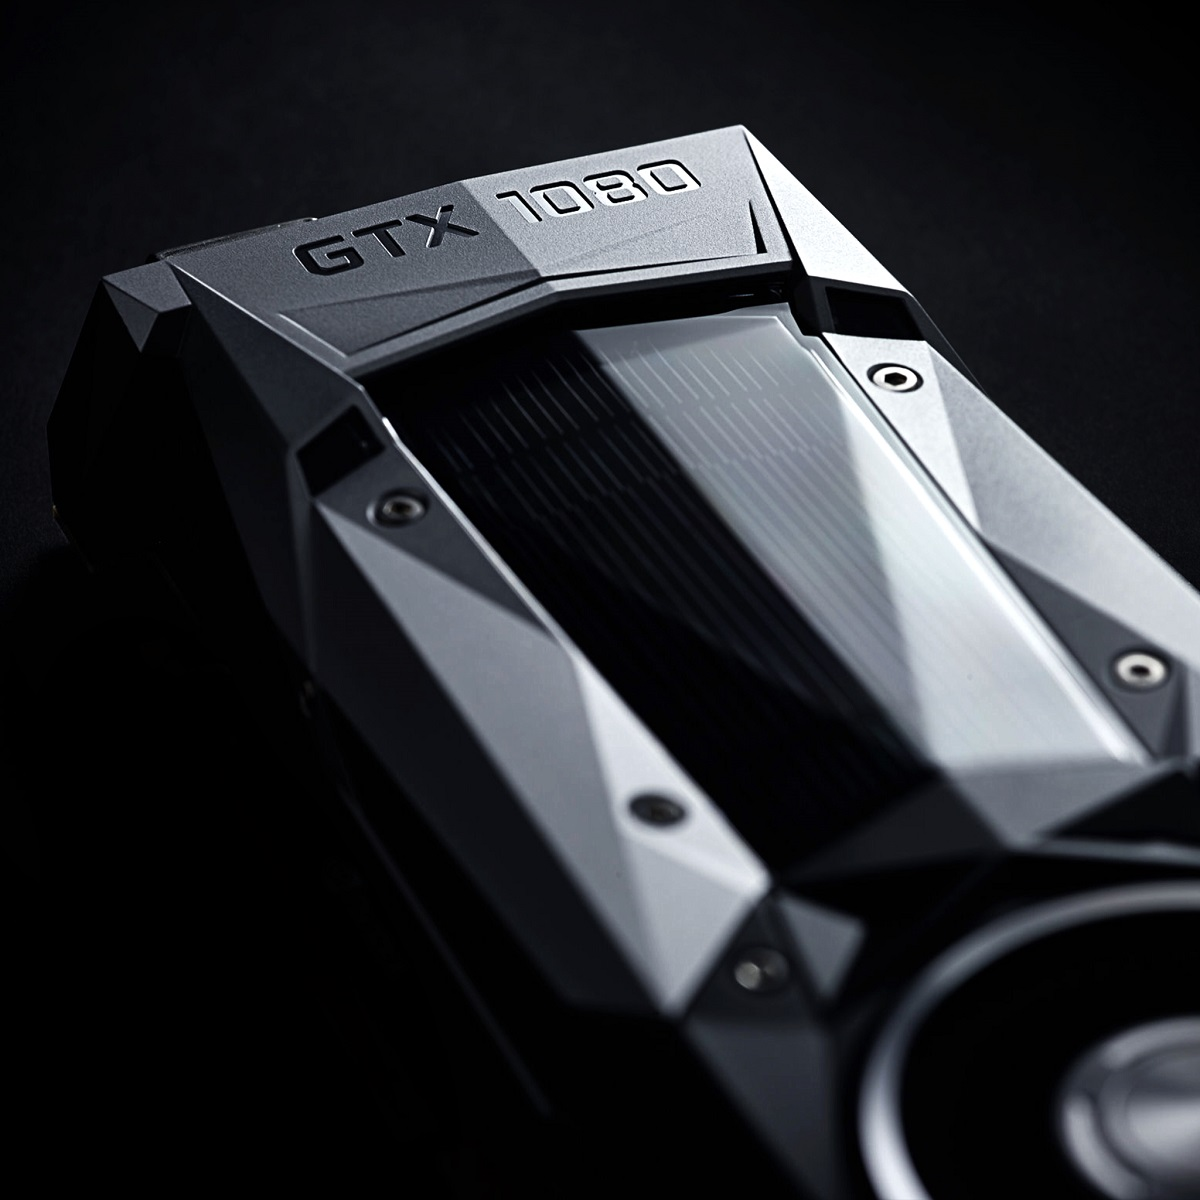 GeForce GTX 1080 - 3